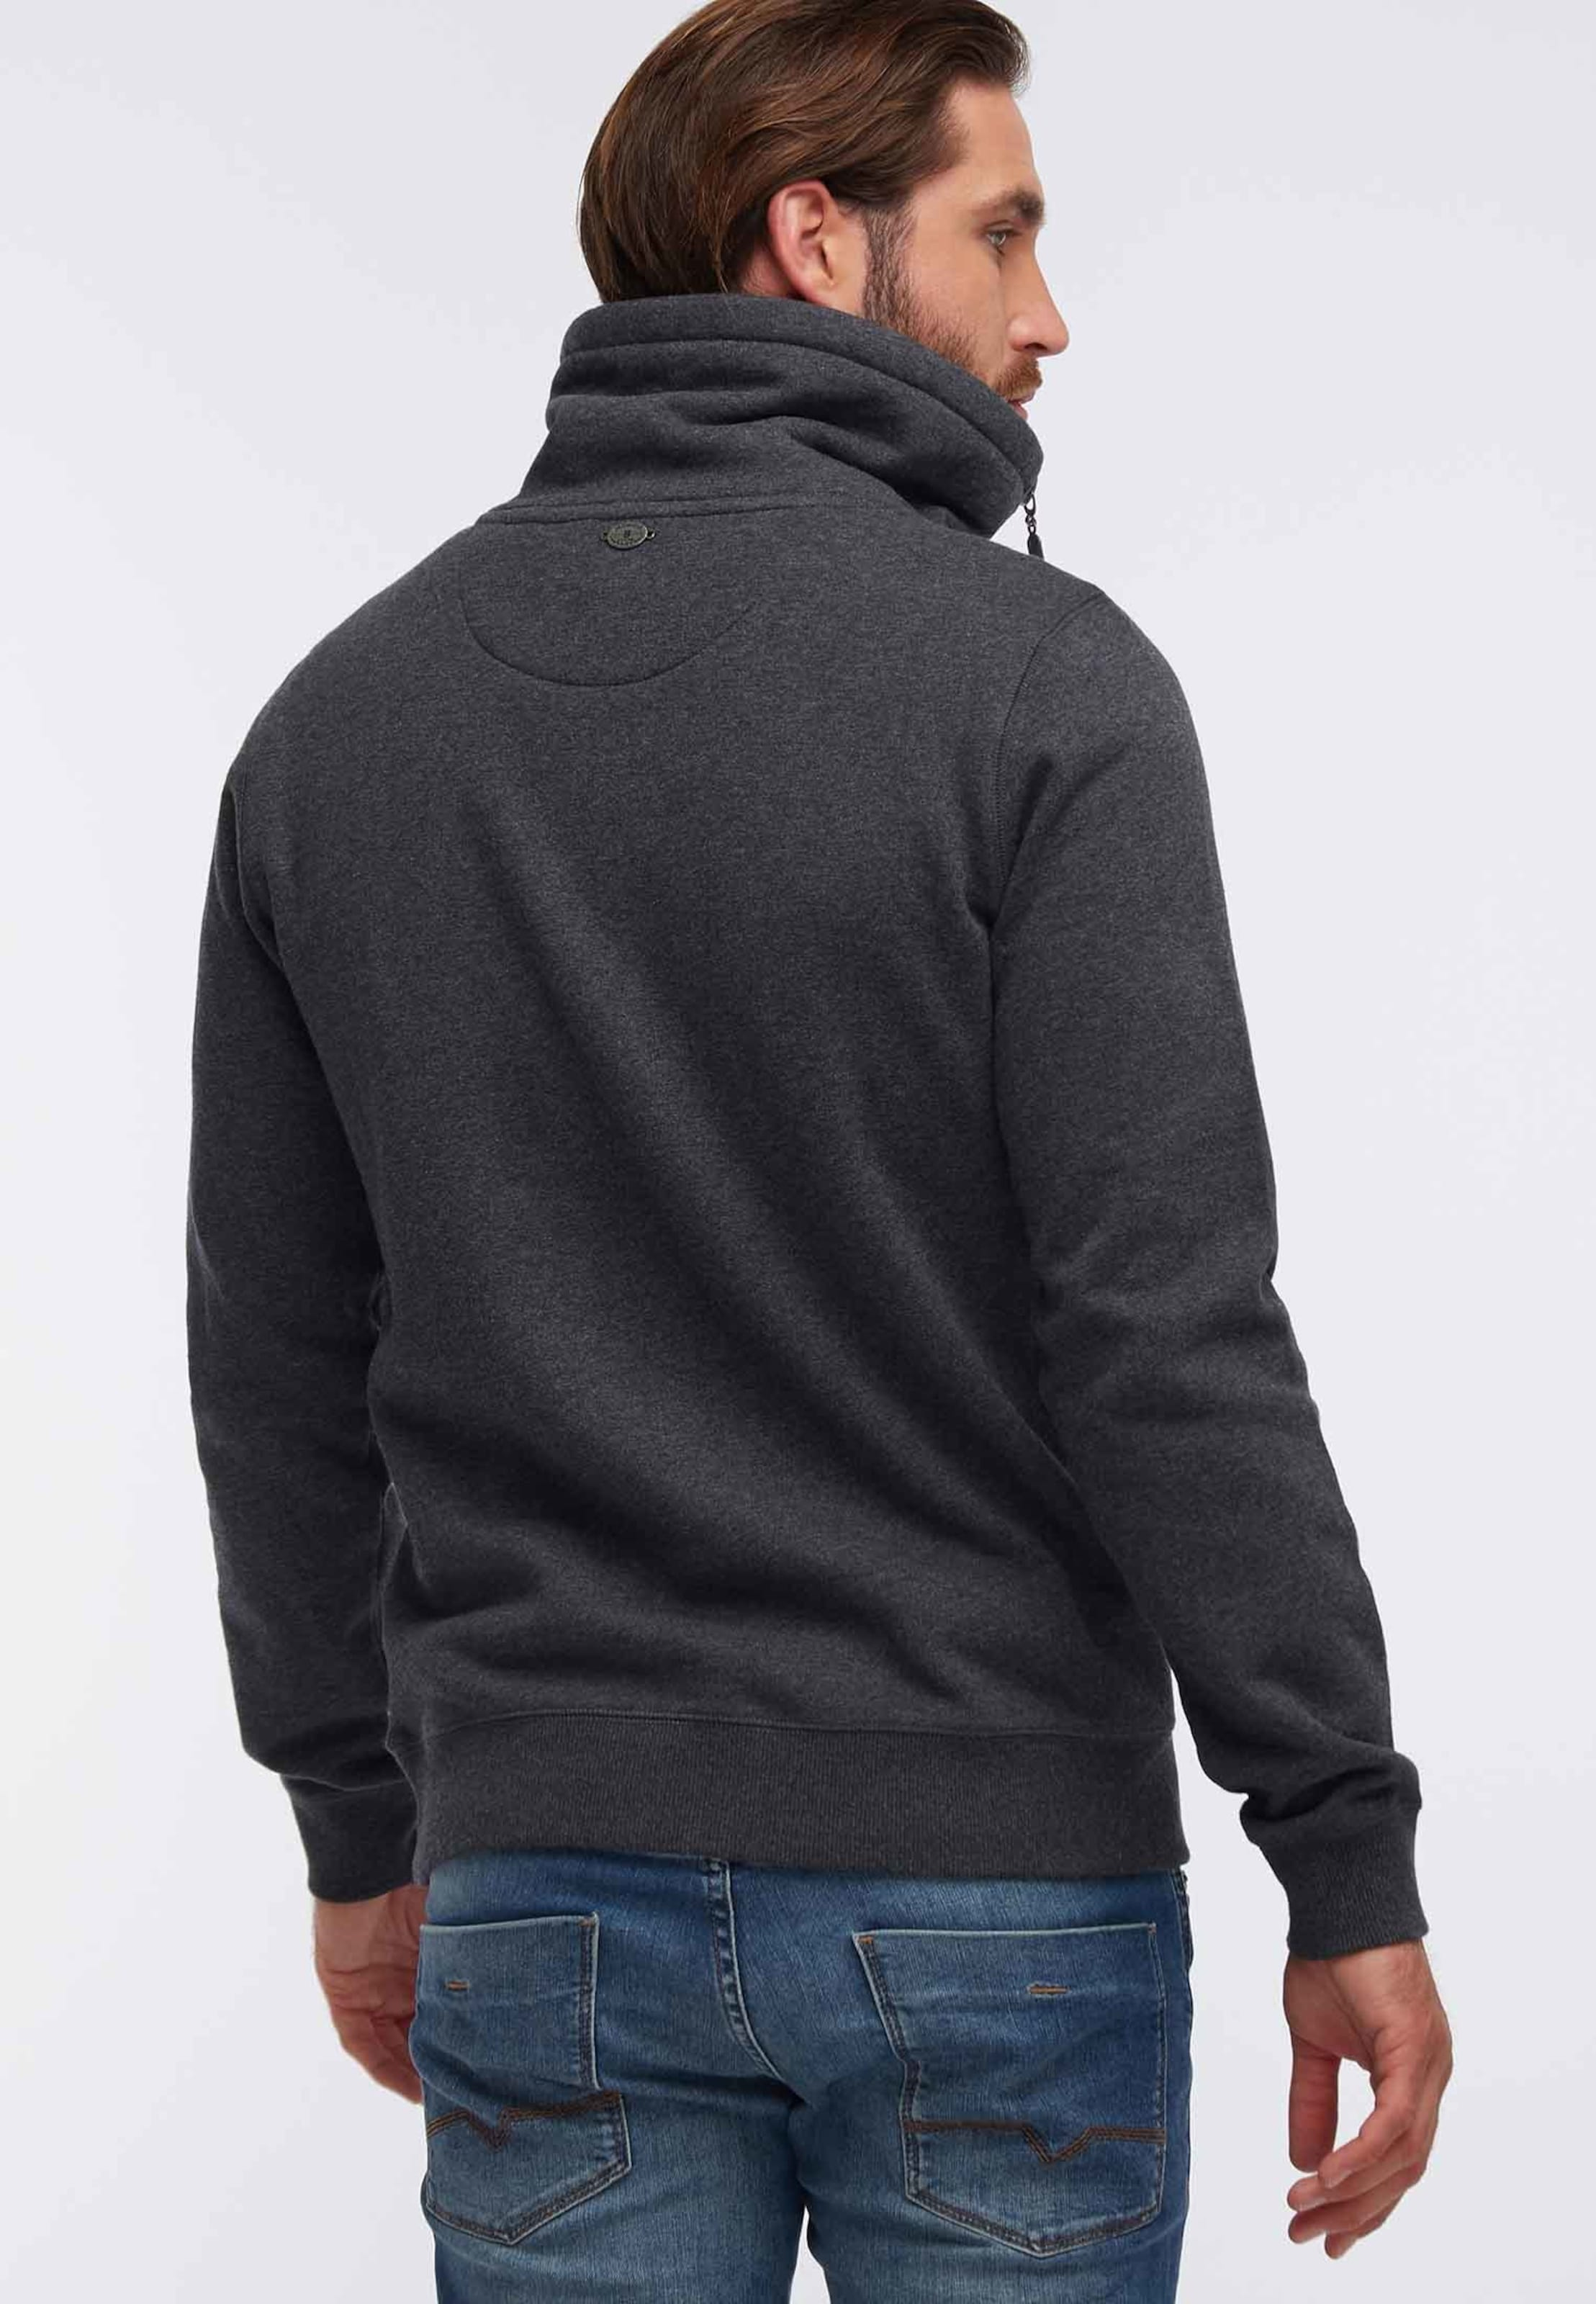 Dreimaster shirt Sweat Graphite Sweat Dreimaster Dreimaster En Graphite shirt En rCxedWQoB